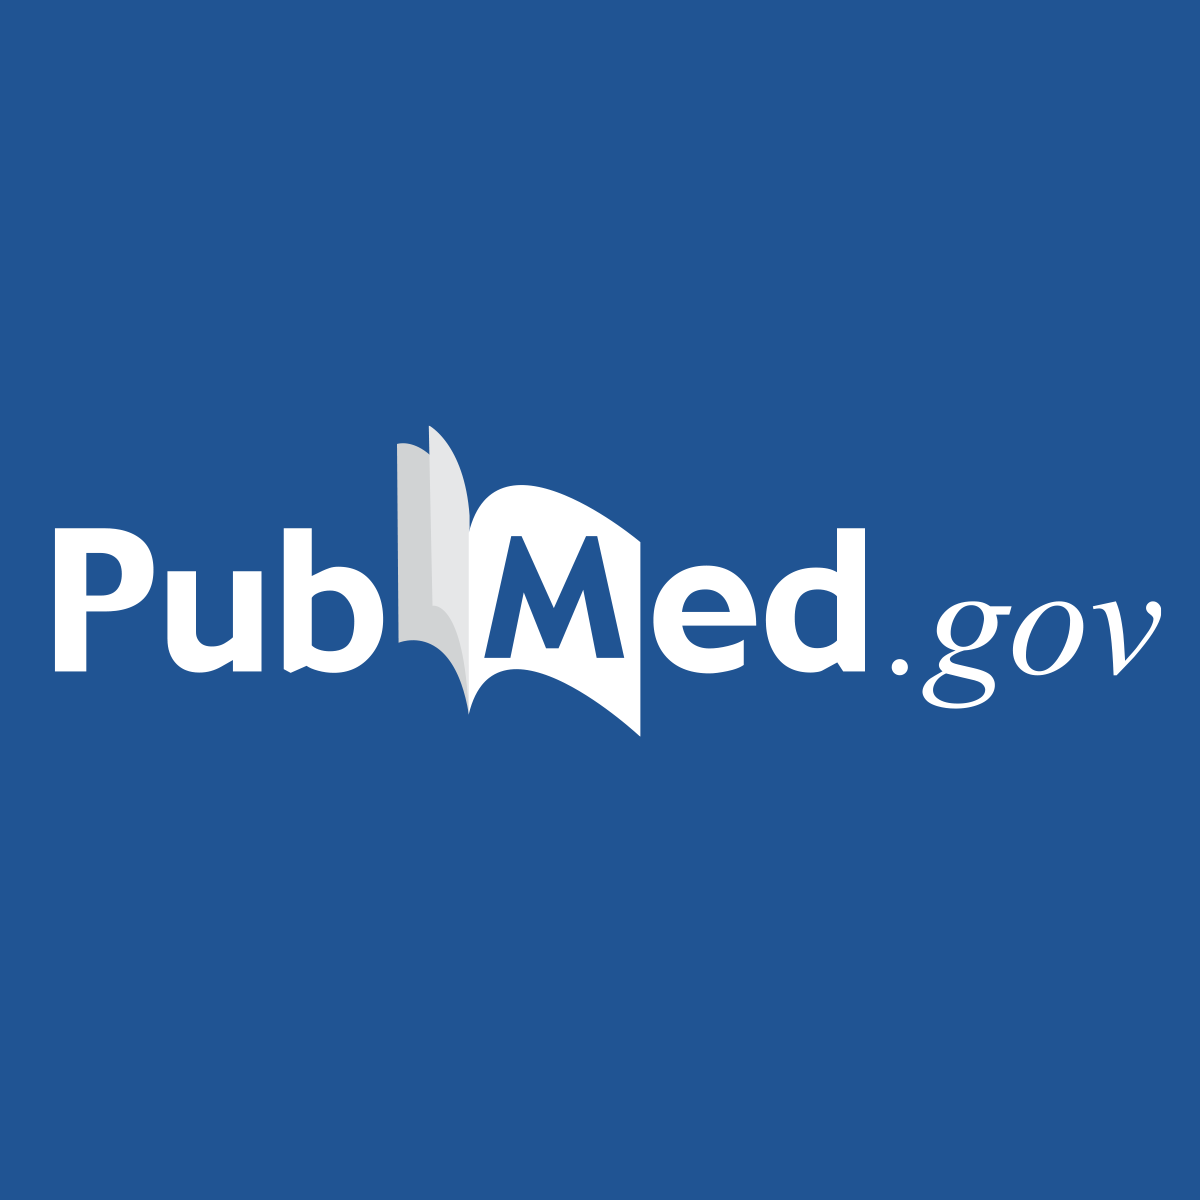 COVID-19 convalescent plasma as long-term therapy in immunodeficient patients? - PubMed